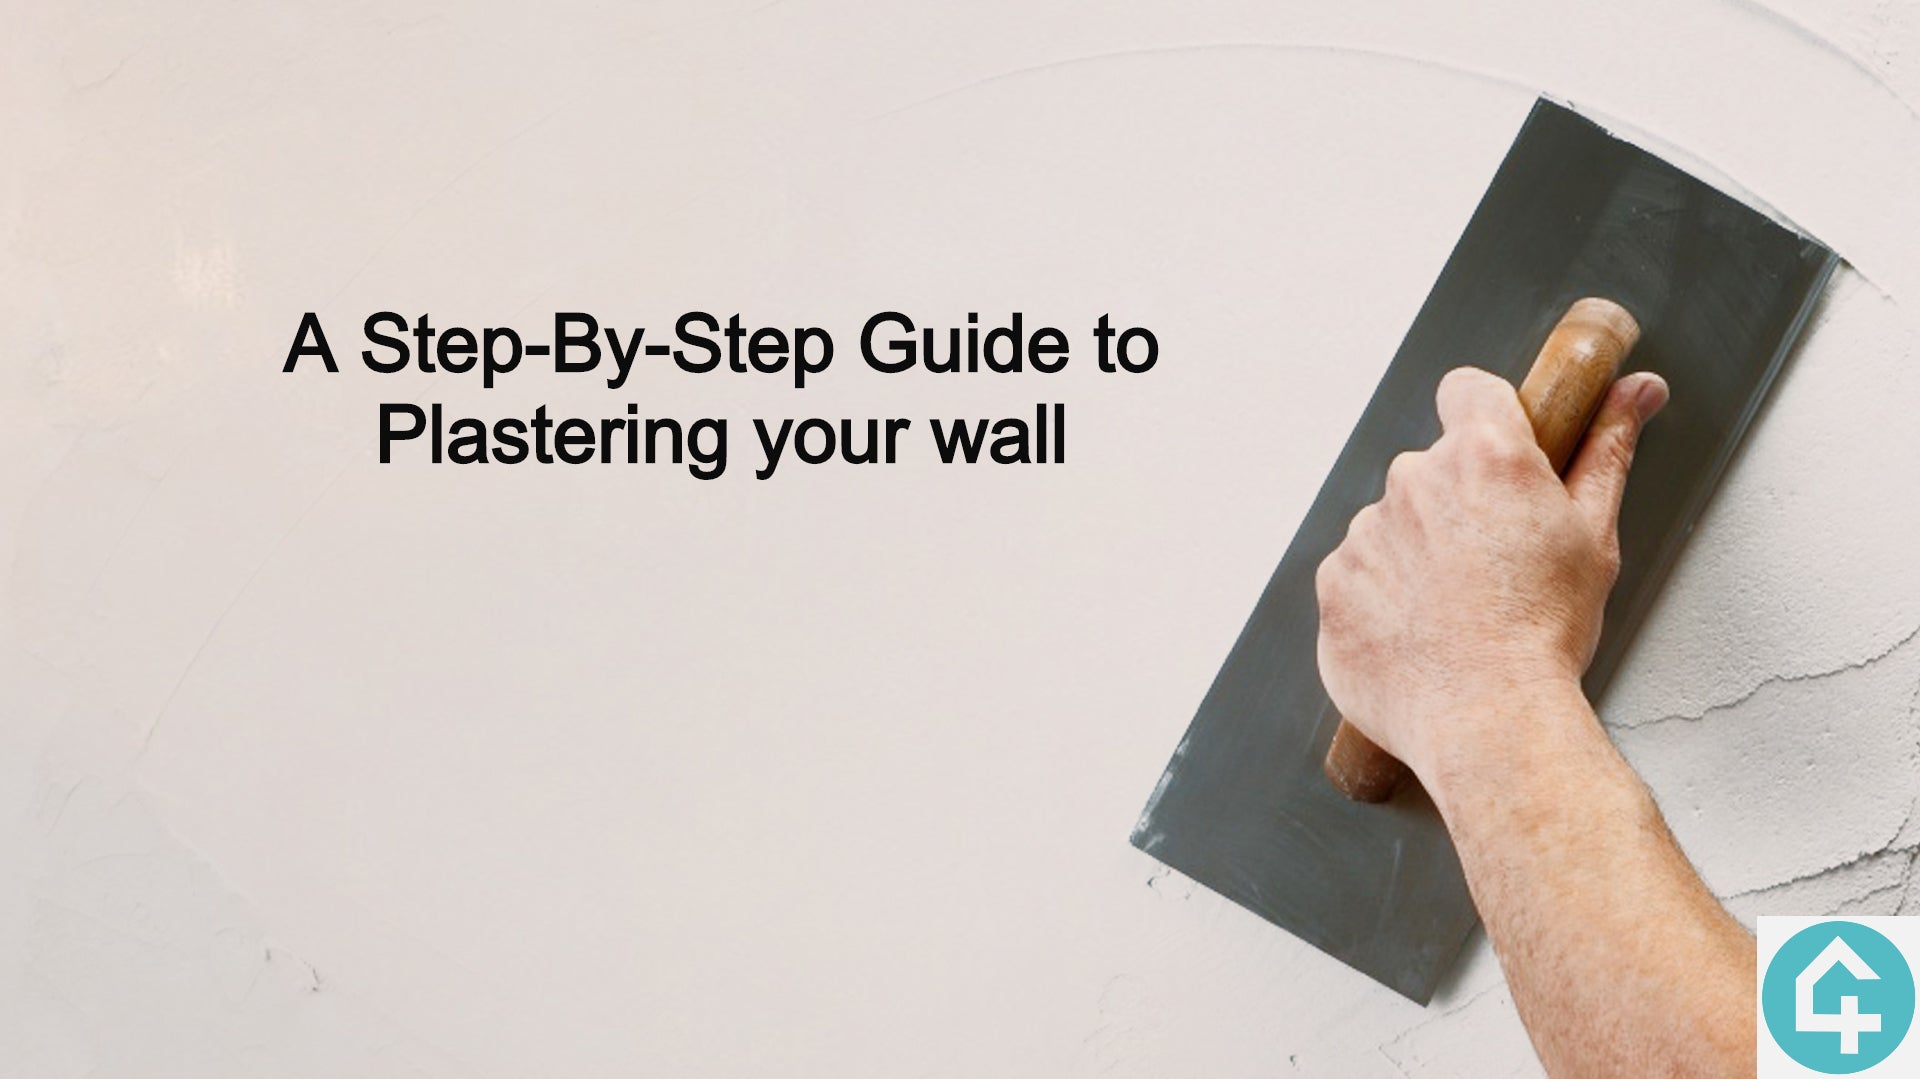 A Step-By-Step Guide to Plastering your wall